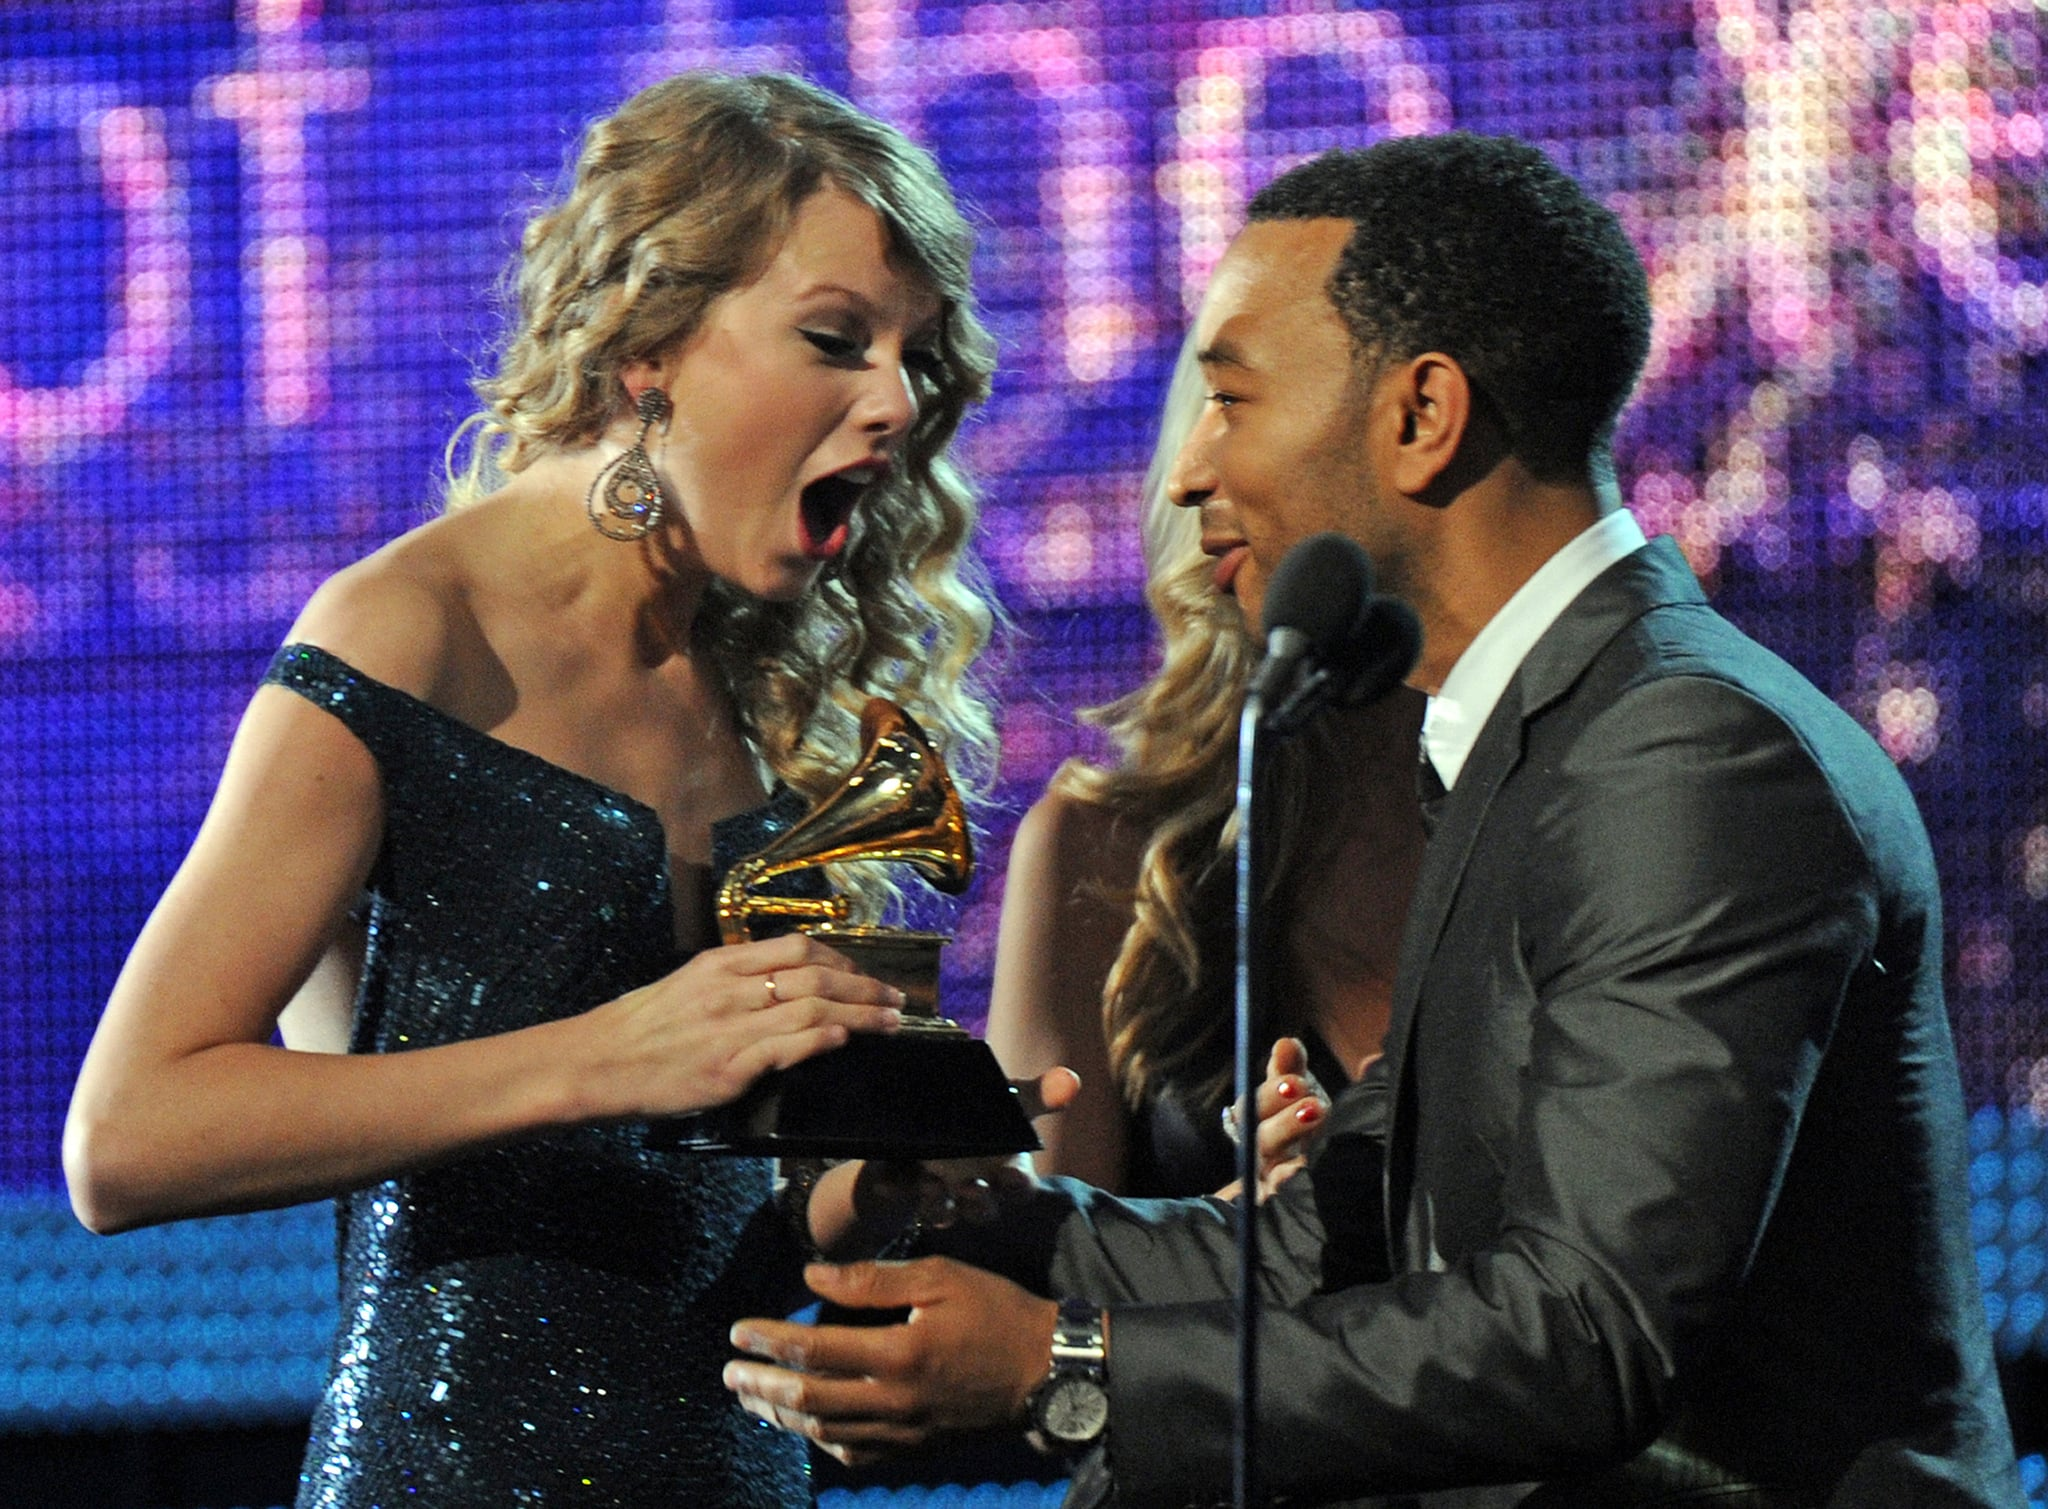 Taylor was thrilled to be presented with the album of the year award by John Legend at the Grammys in January 2010.